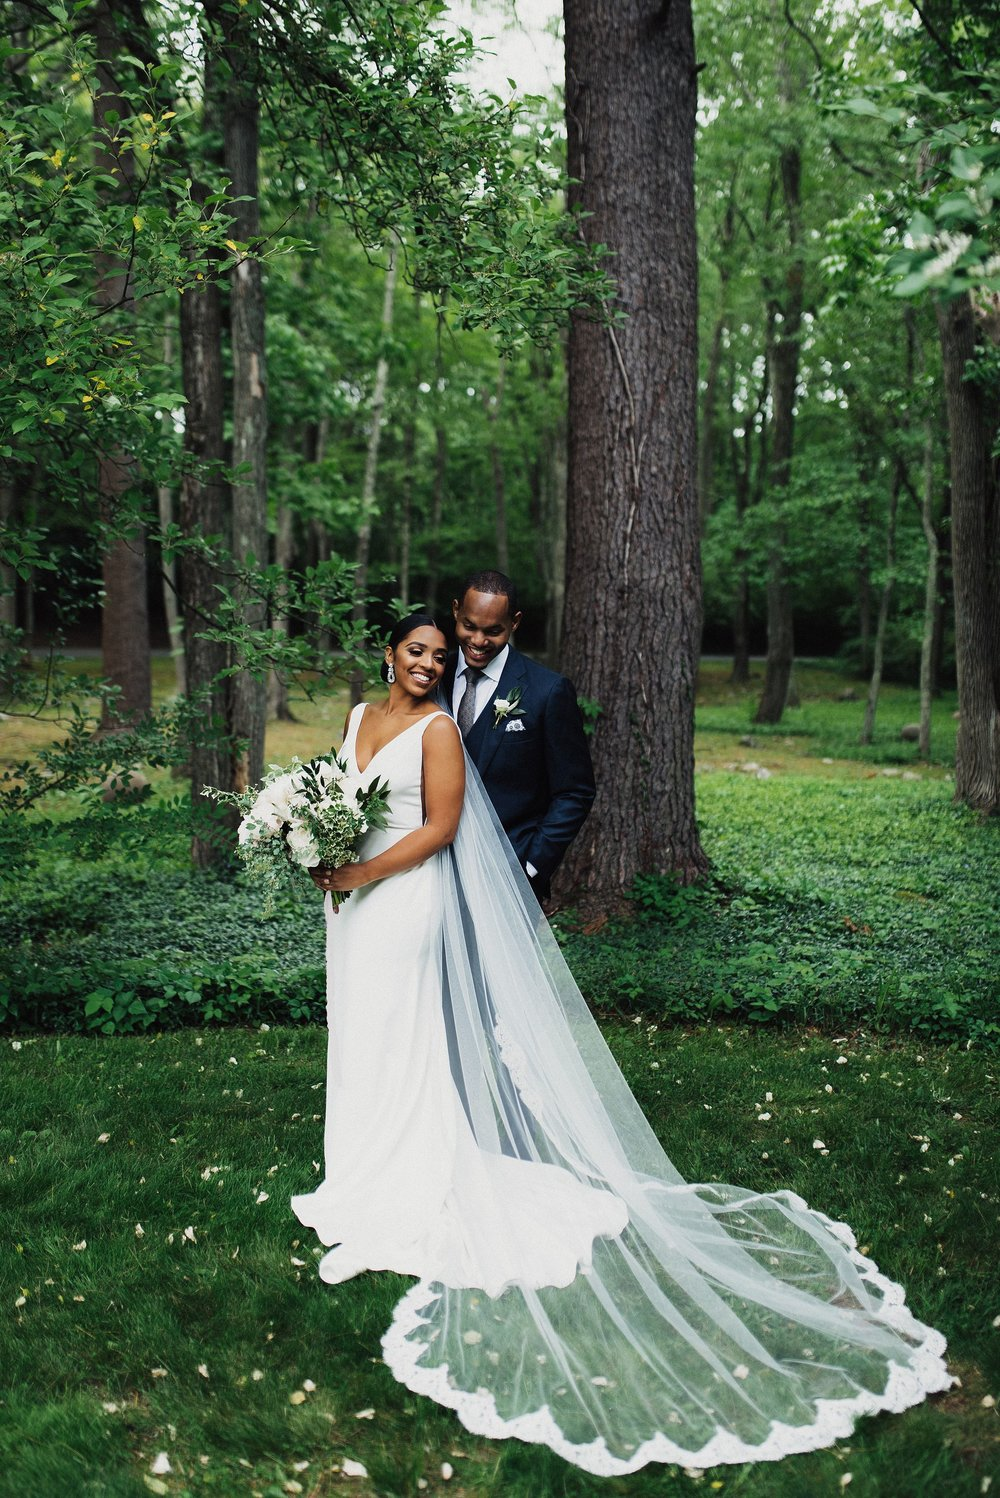 connecticut wedding photographer eden strader